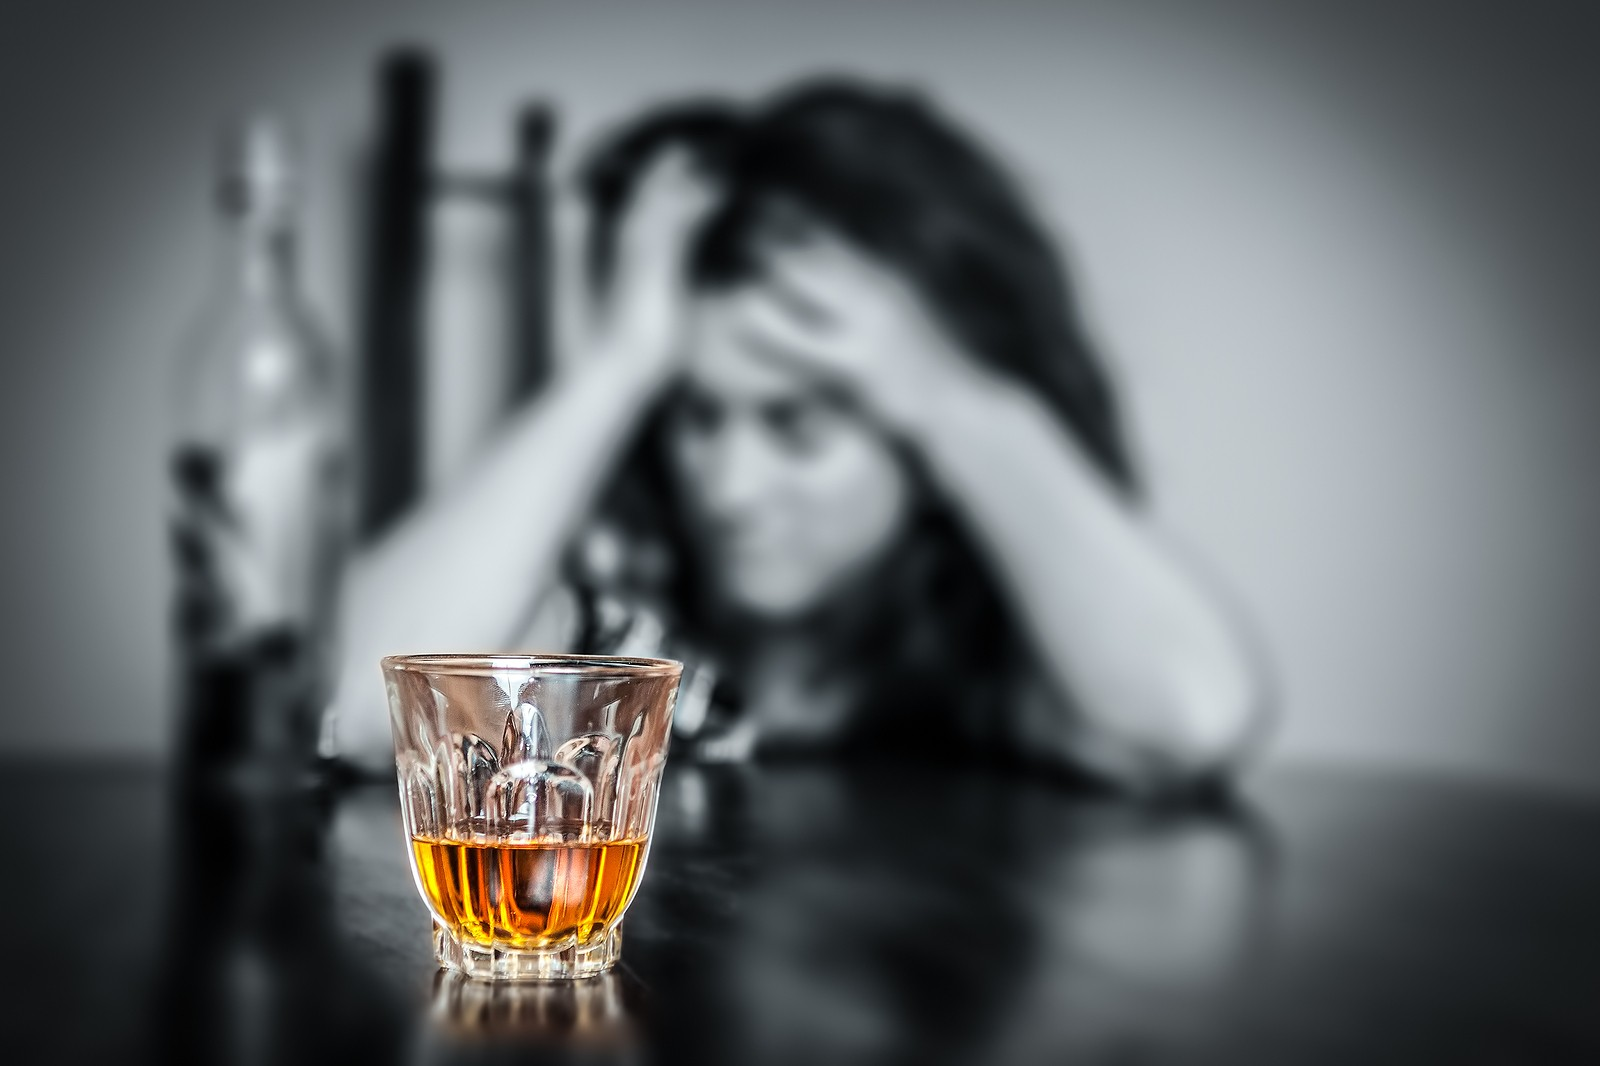 alcohol dependency problem drinking As well as causing serious health problems, long-term alcohol misuse can lead to social problems, such as unemployment, divorce, domestic abuse and homelessness if someone loses control over their drinking and has an excessive desire to drink, it's known as dependent drinking (alcoholism.